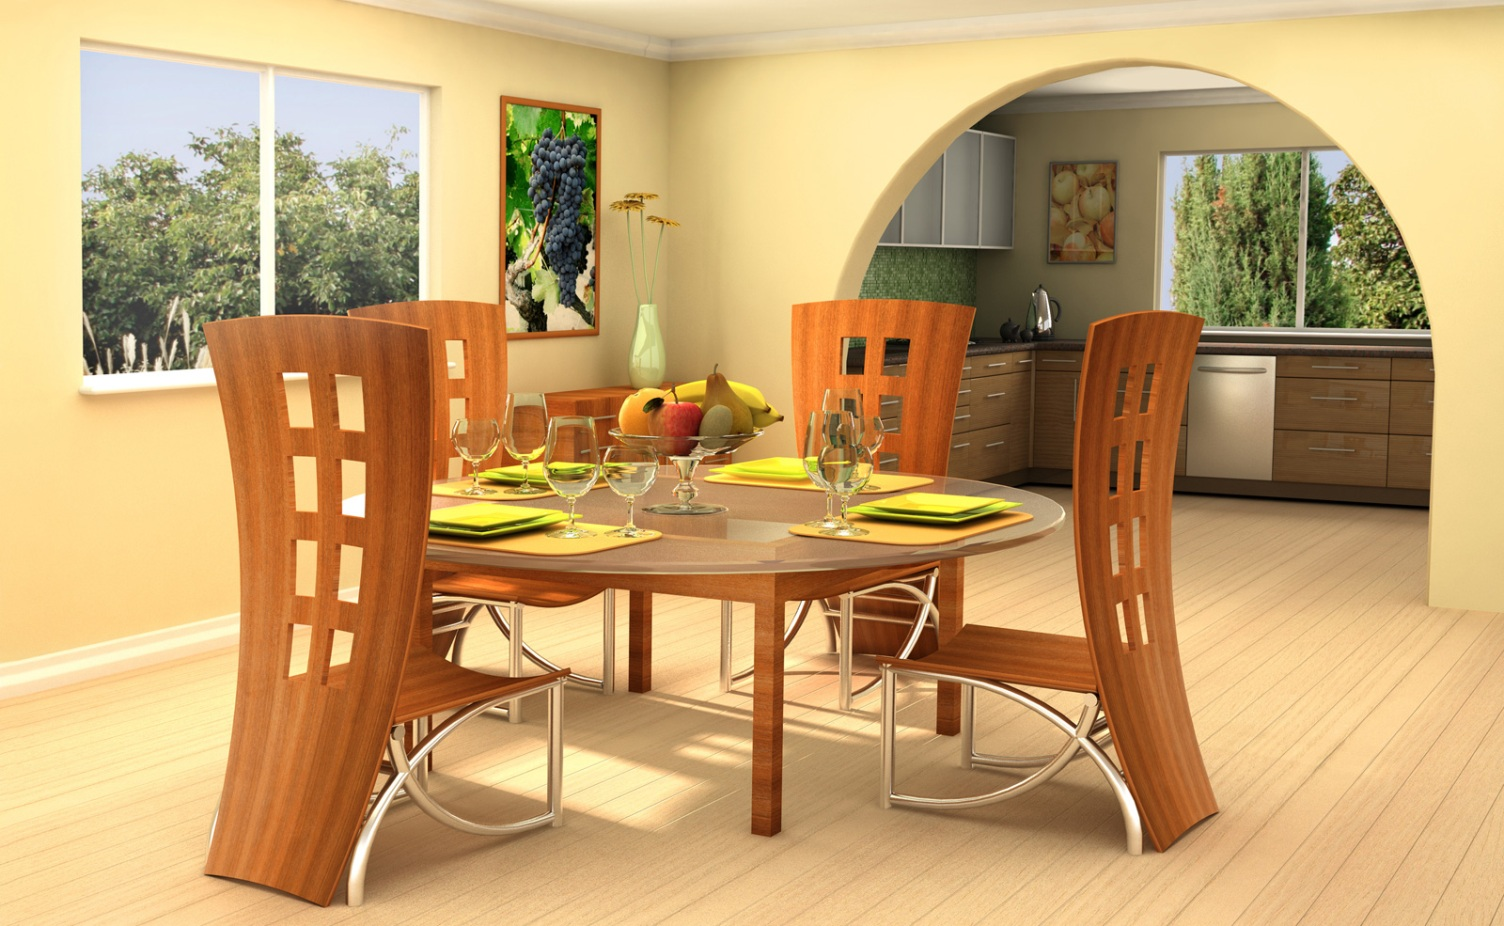 Go creative and pick unique dining room table and chairs for Dining room table and chairs ideas